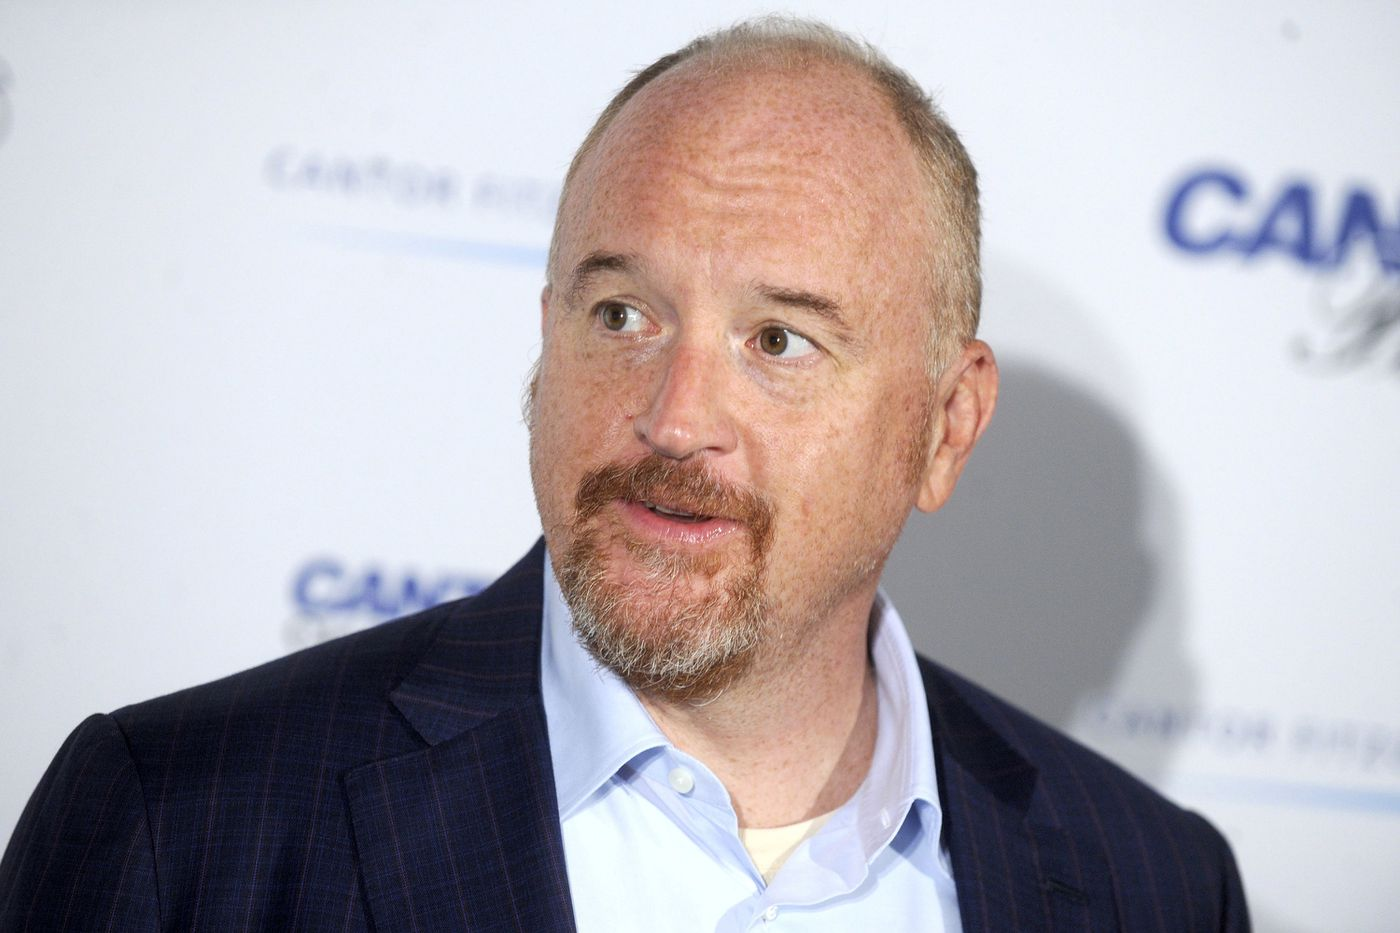 Louis CK returns to stage for first stand-up set after admission to #MeToo accusations